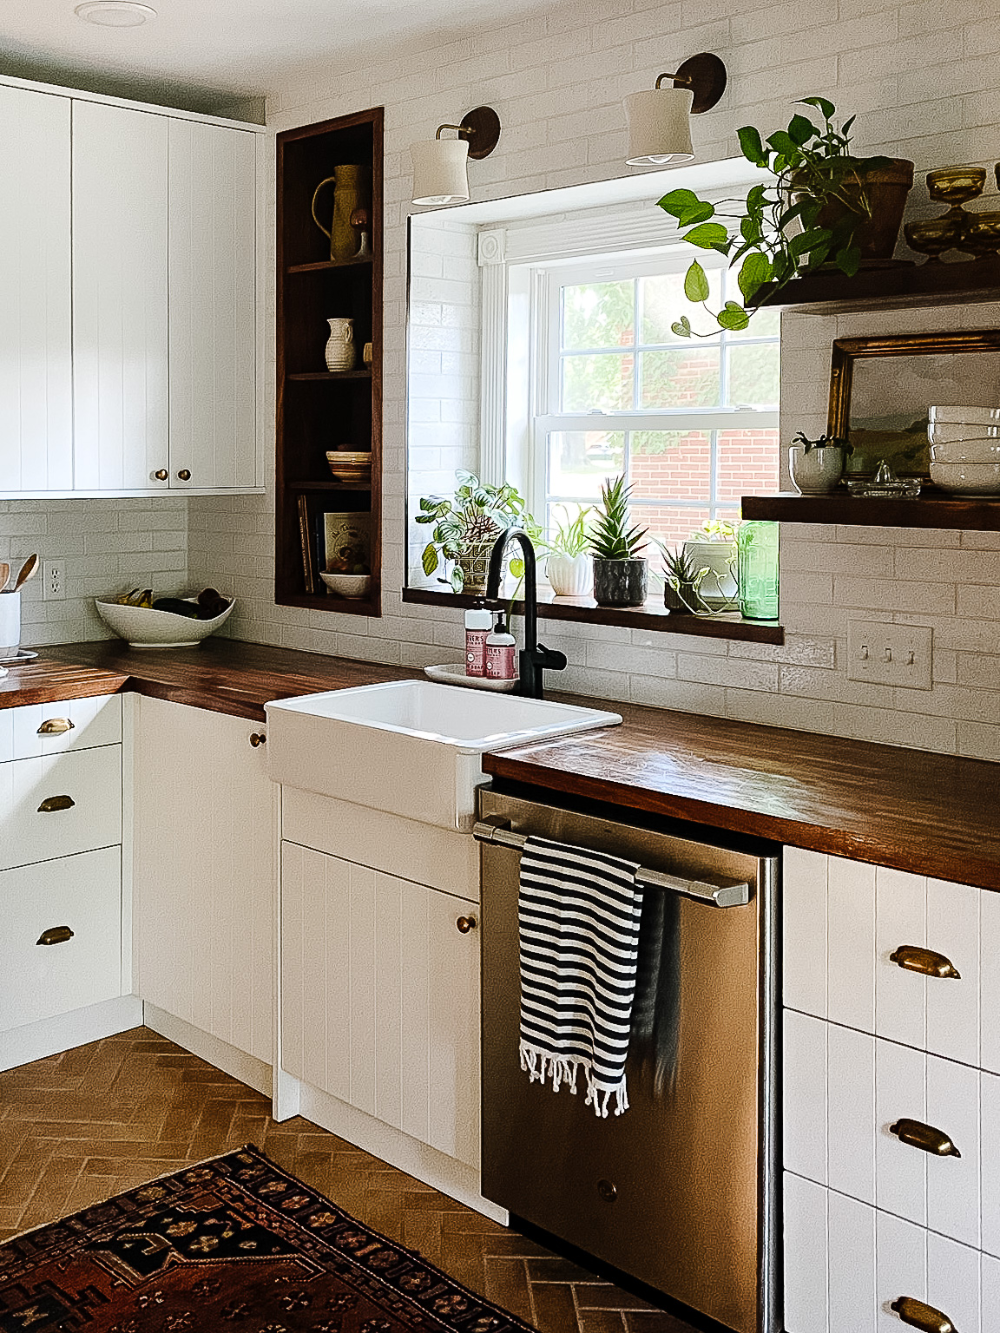 Before And After Incredible Ikea Kitchen Remodel With Semihandmade Interior Designer Des Moines Jillian Lare In 2020 Ikea Kitchen Remodel Ikea Kitchen Design Kitchen Cabinet Design